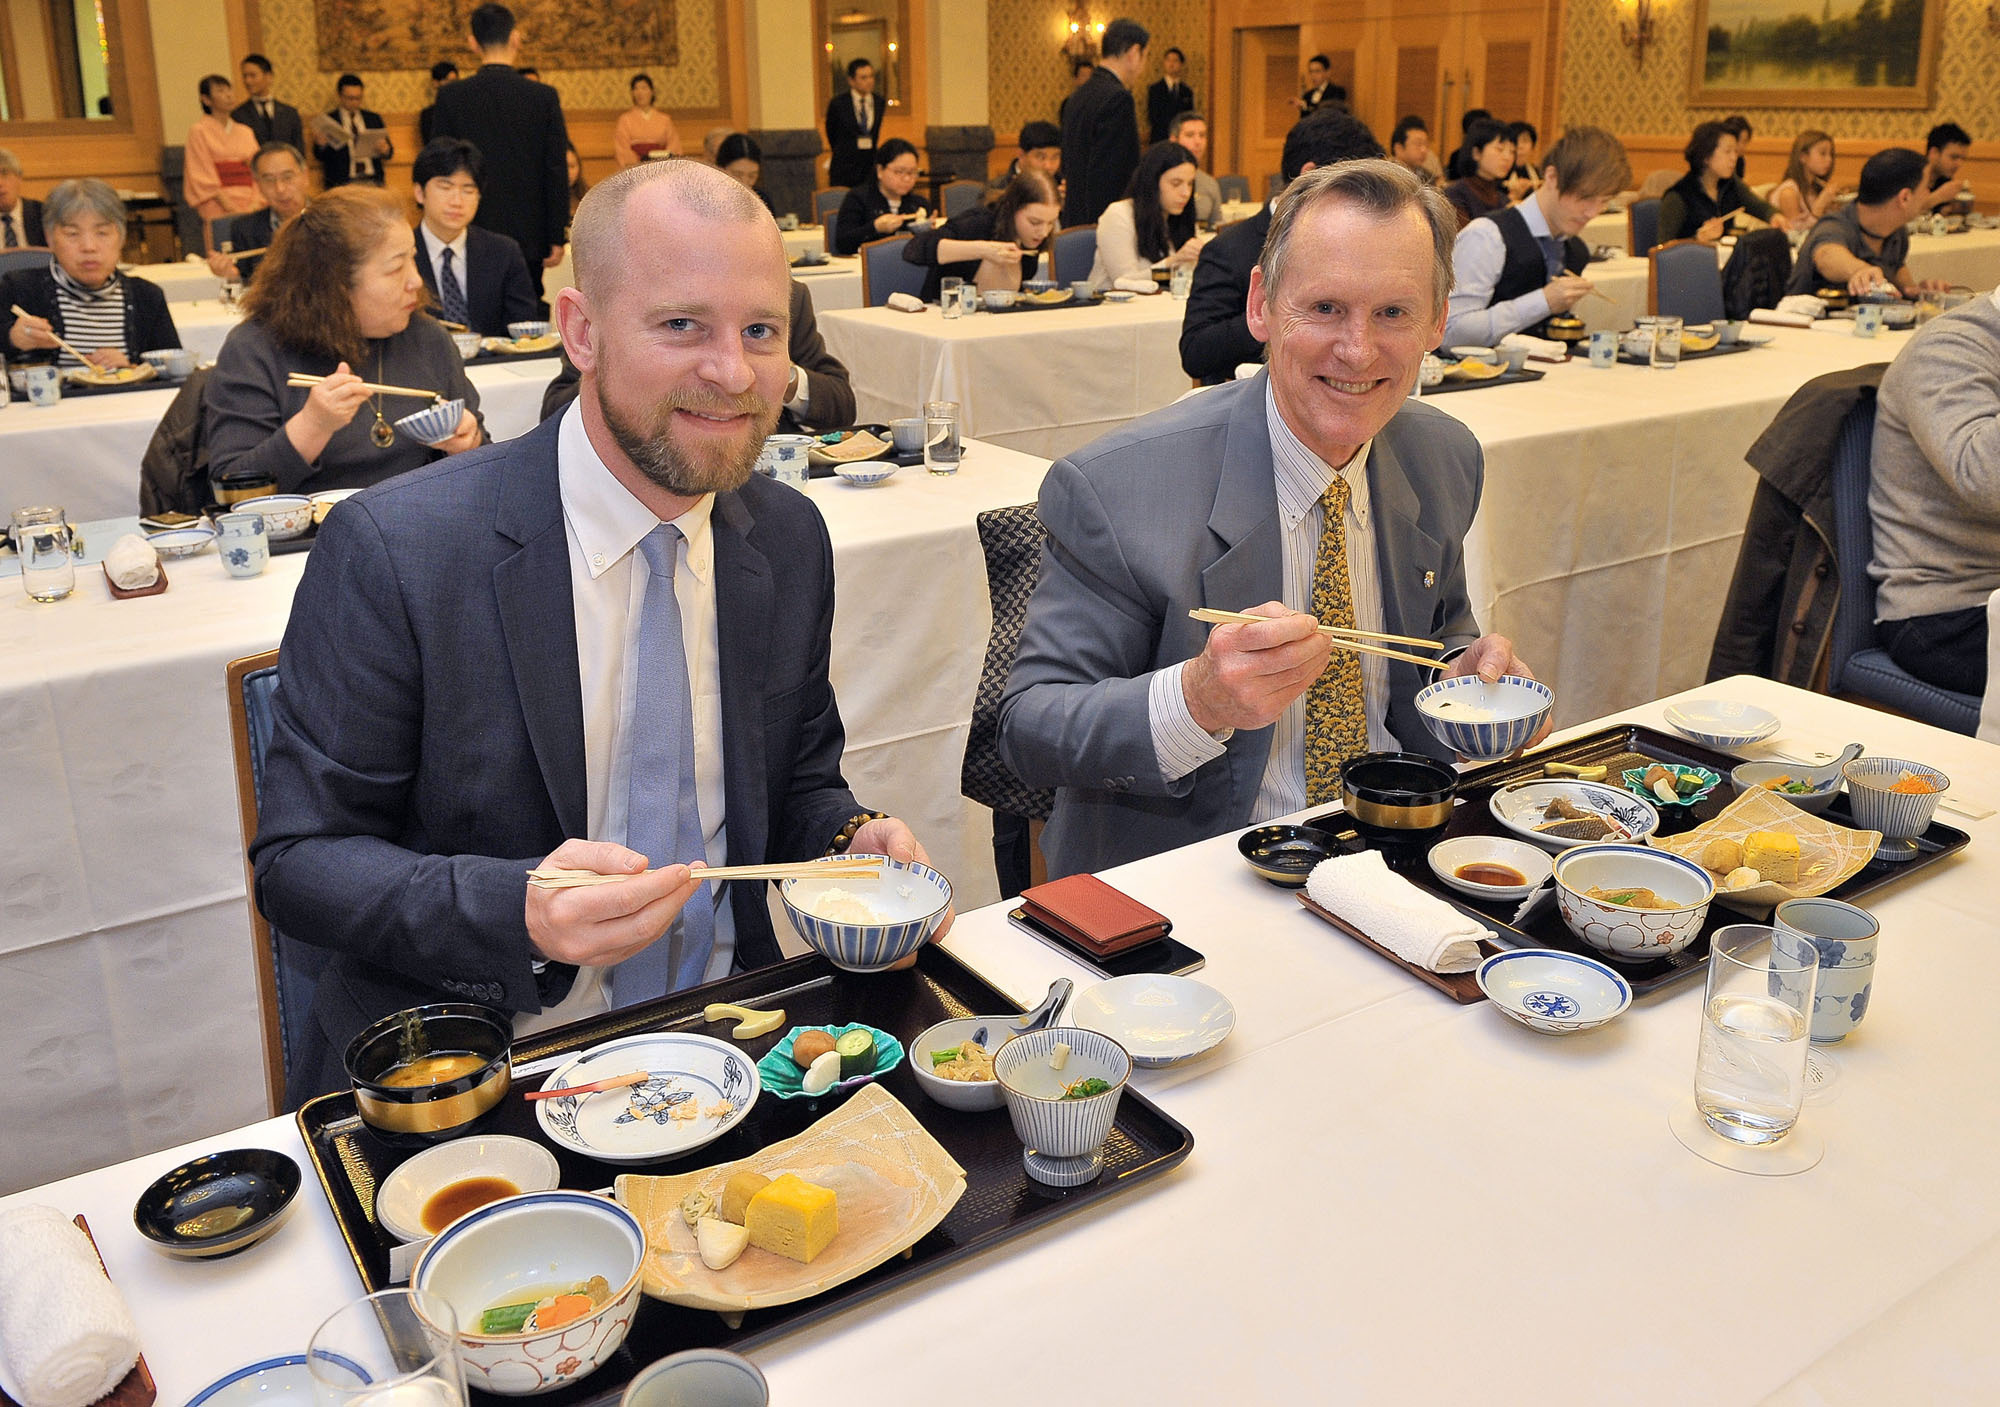 Members of the foreign press eat wachoshoku, traditional Japanese breakfast, while receiving an etiquette lesson at the Hotel Okura in Tokyo on Feb. 16. | YOSHIAKI MIURA